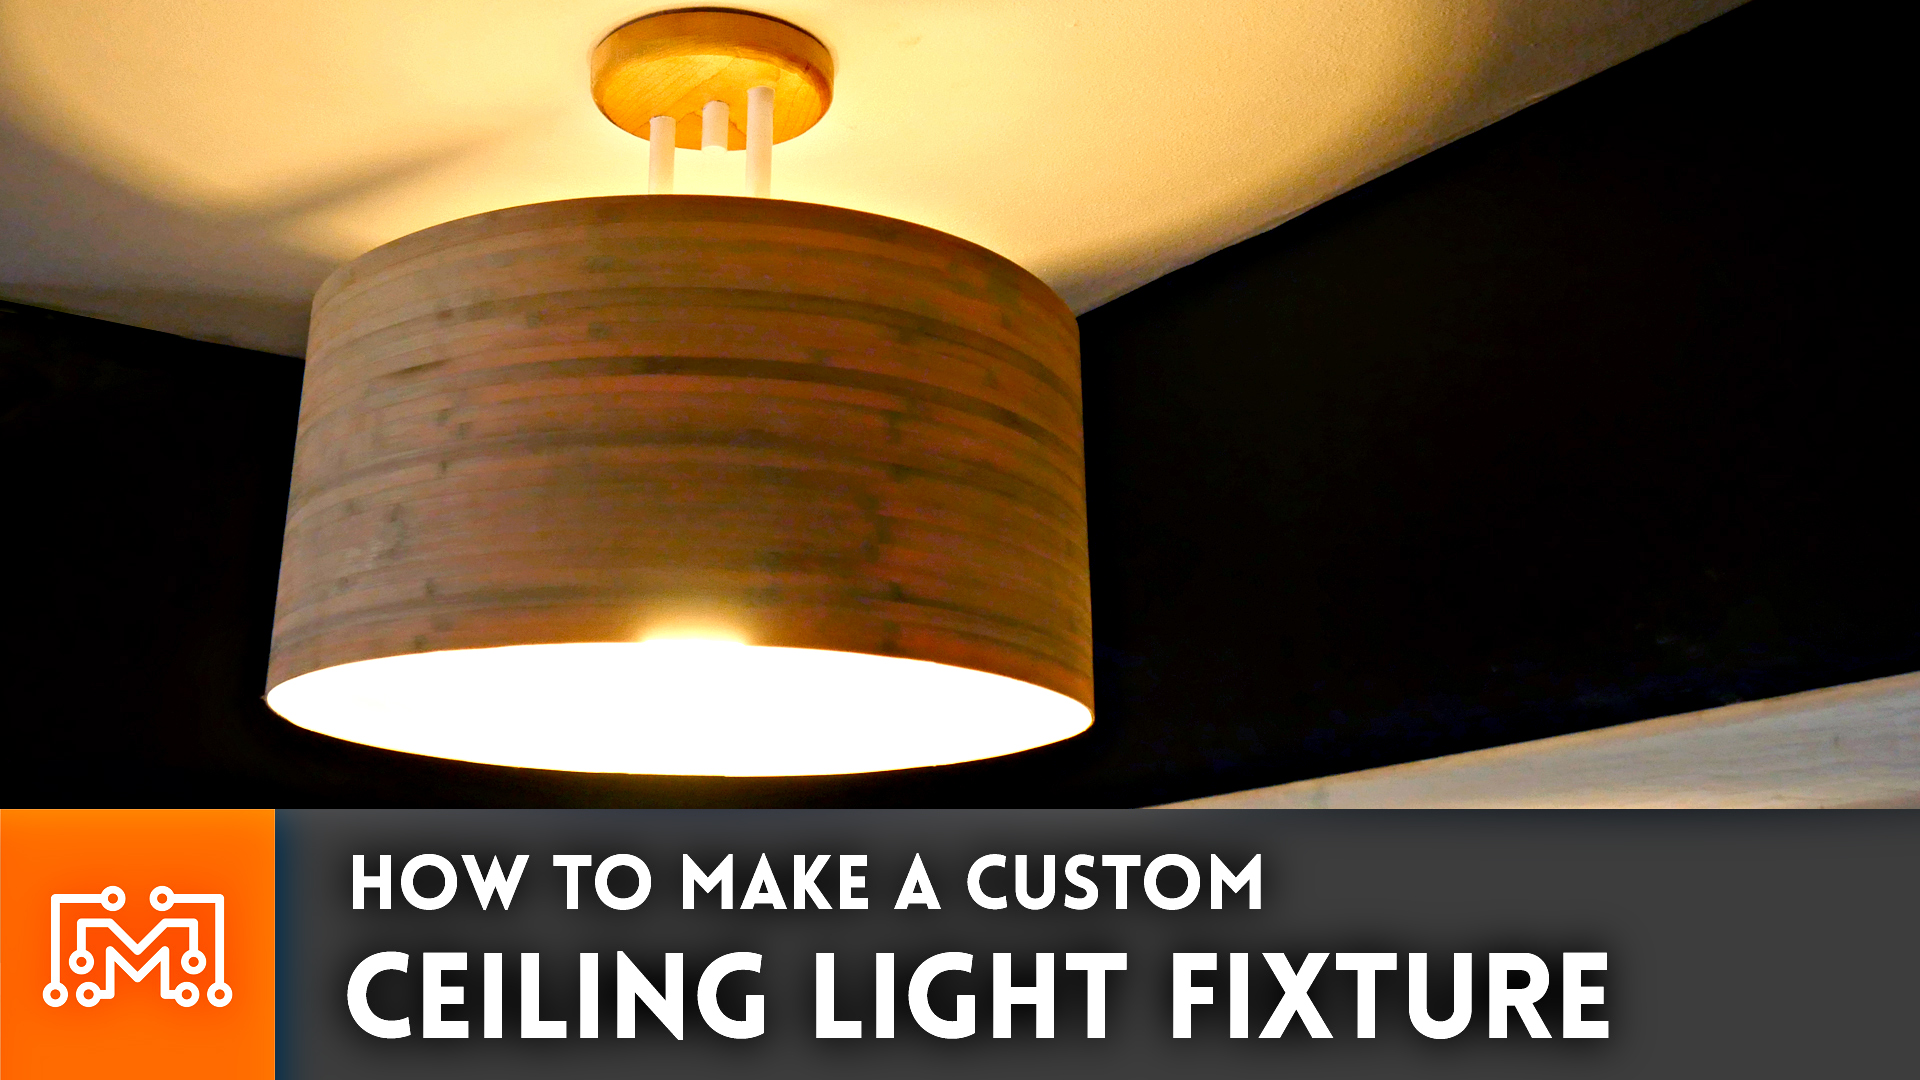 How to make a light fixture jar magic for How to make a light fixture